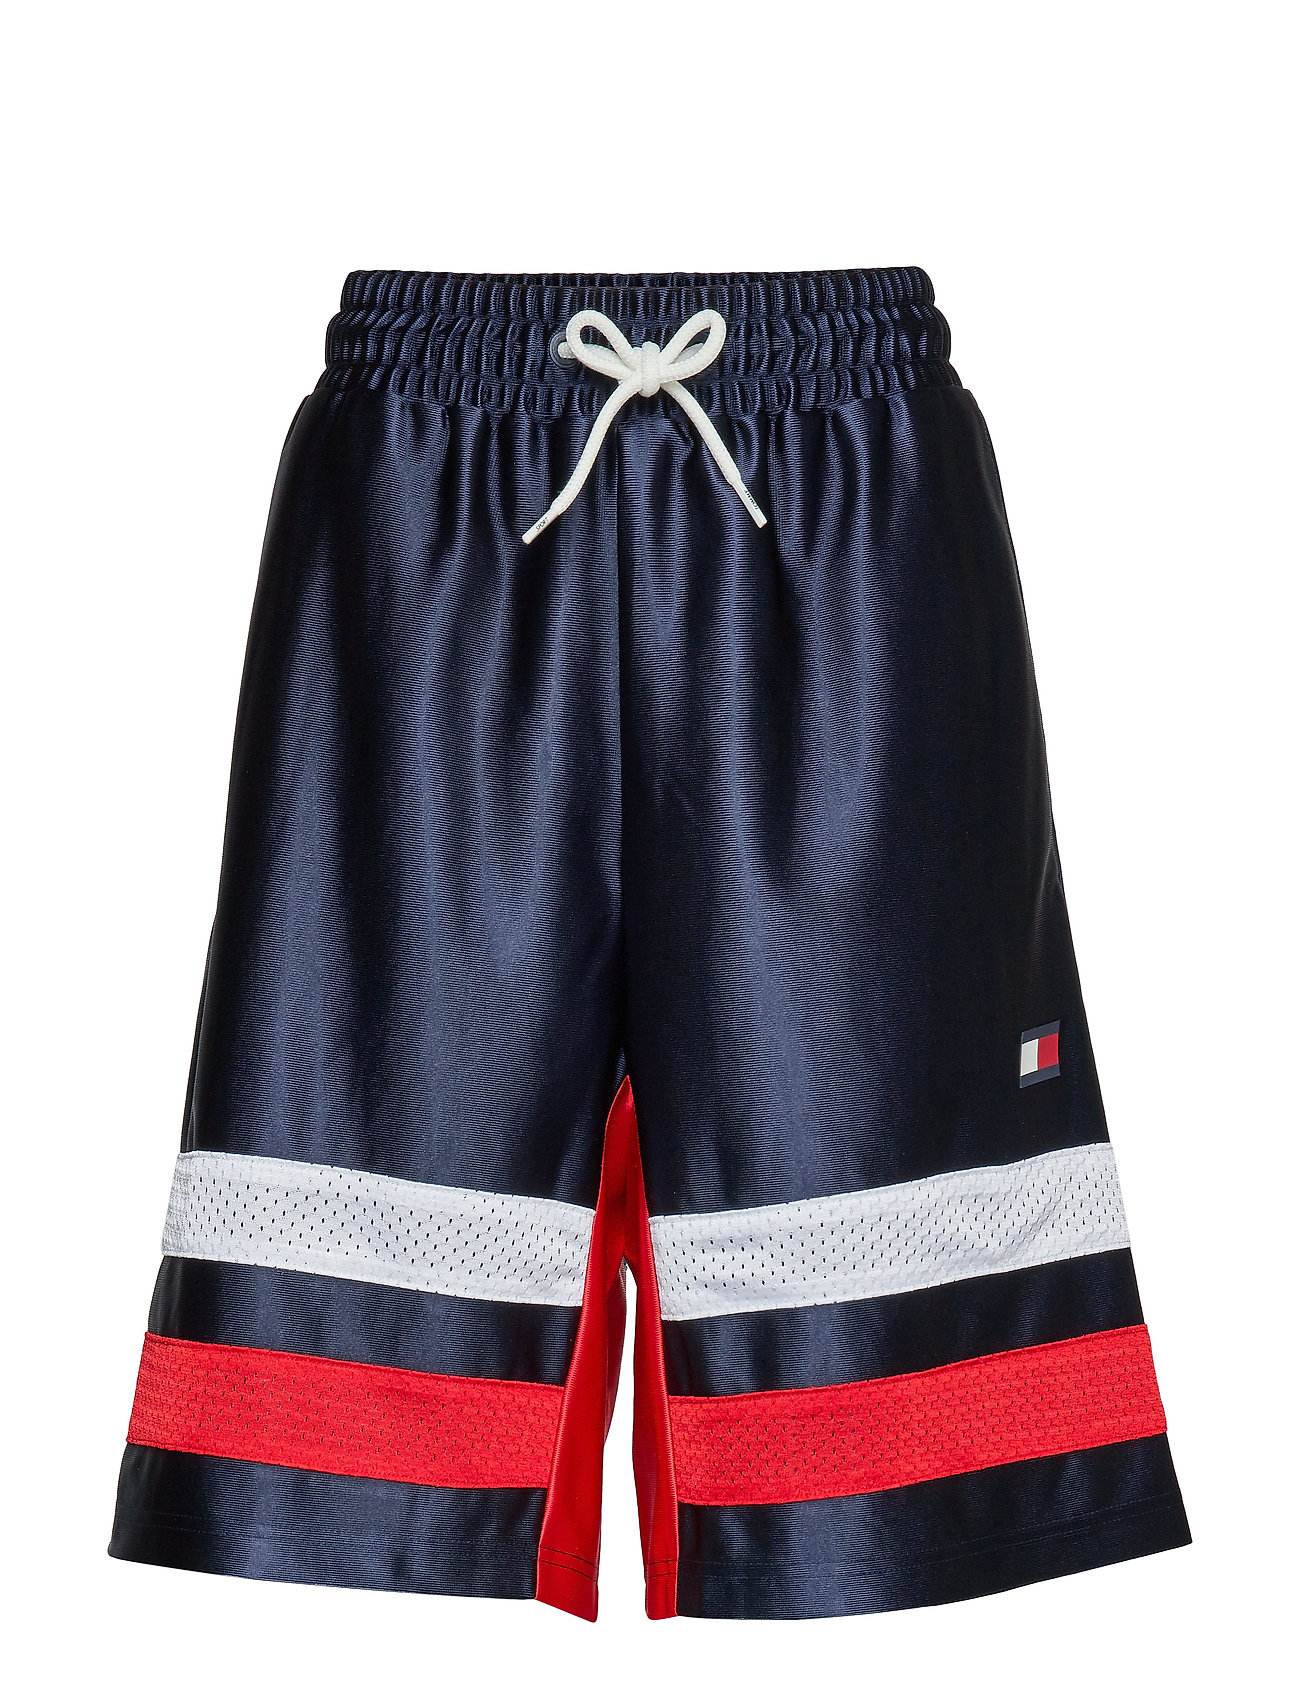 "Tommy Sport ARCHIVE SHORT 9"" - SPORT NAVY"